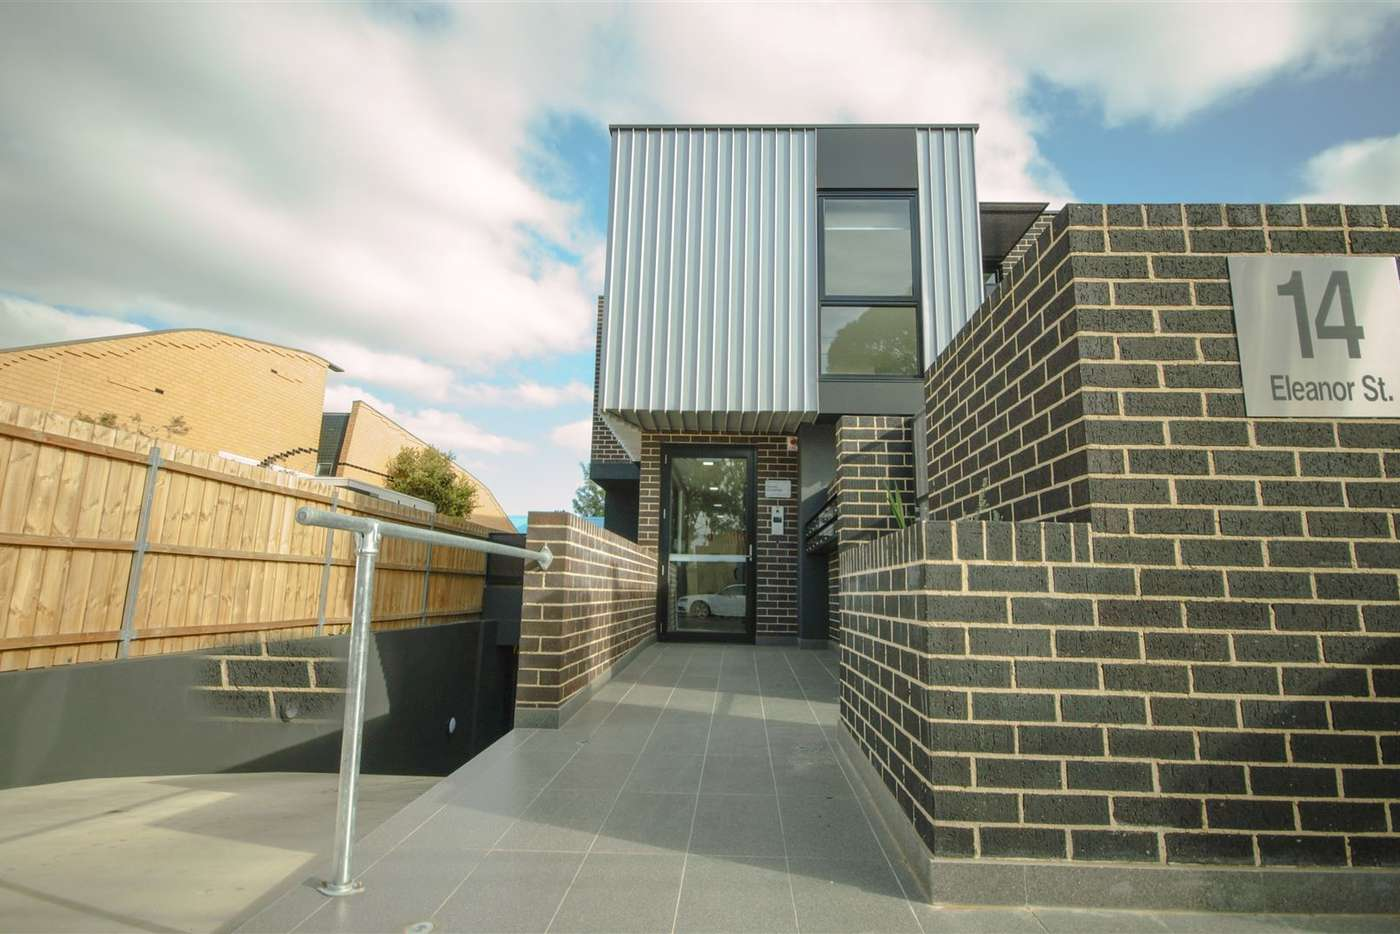 Main view of Homely apartment listing, 6/14 Eleanor Street, Footscray VIC 3011